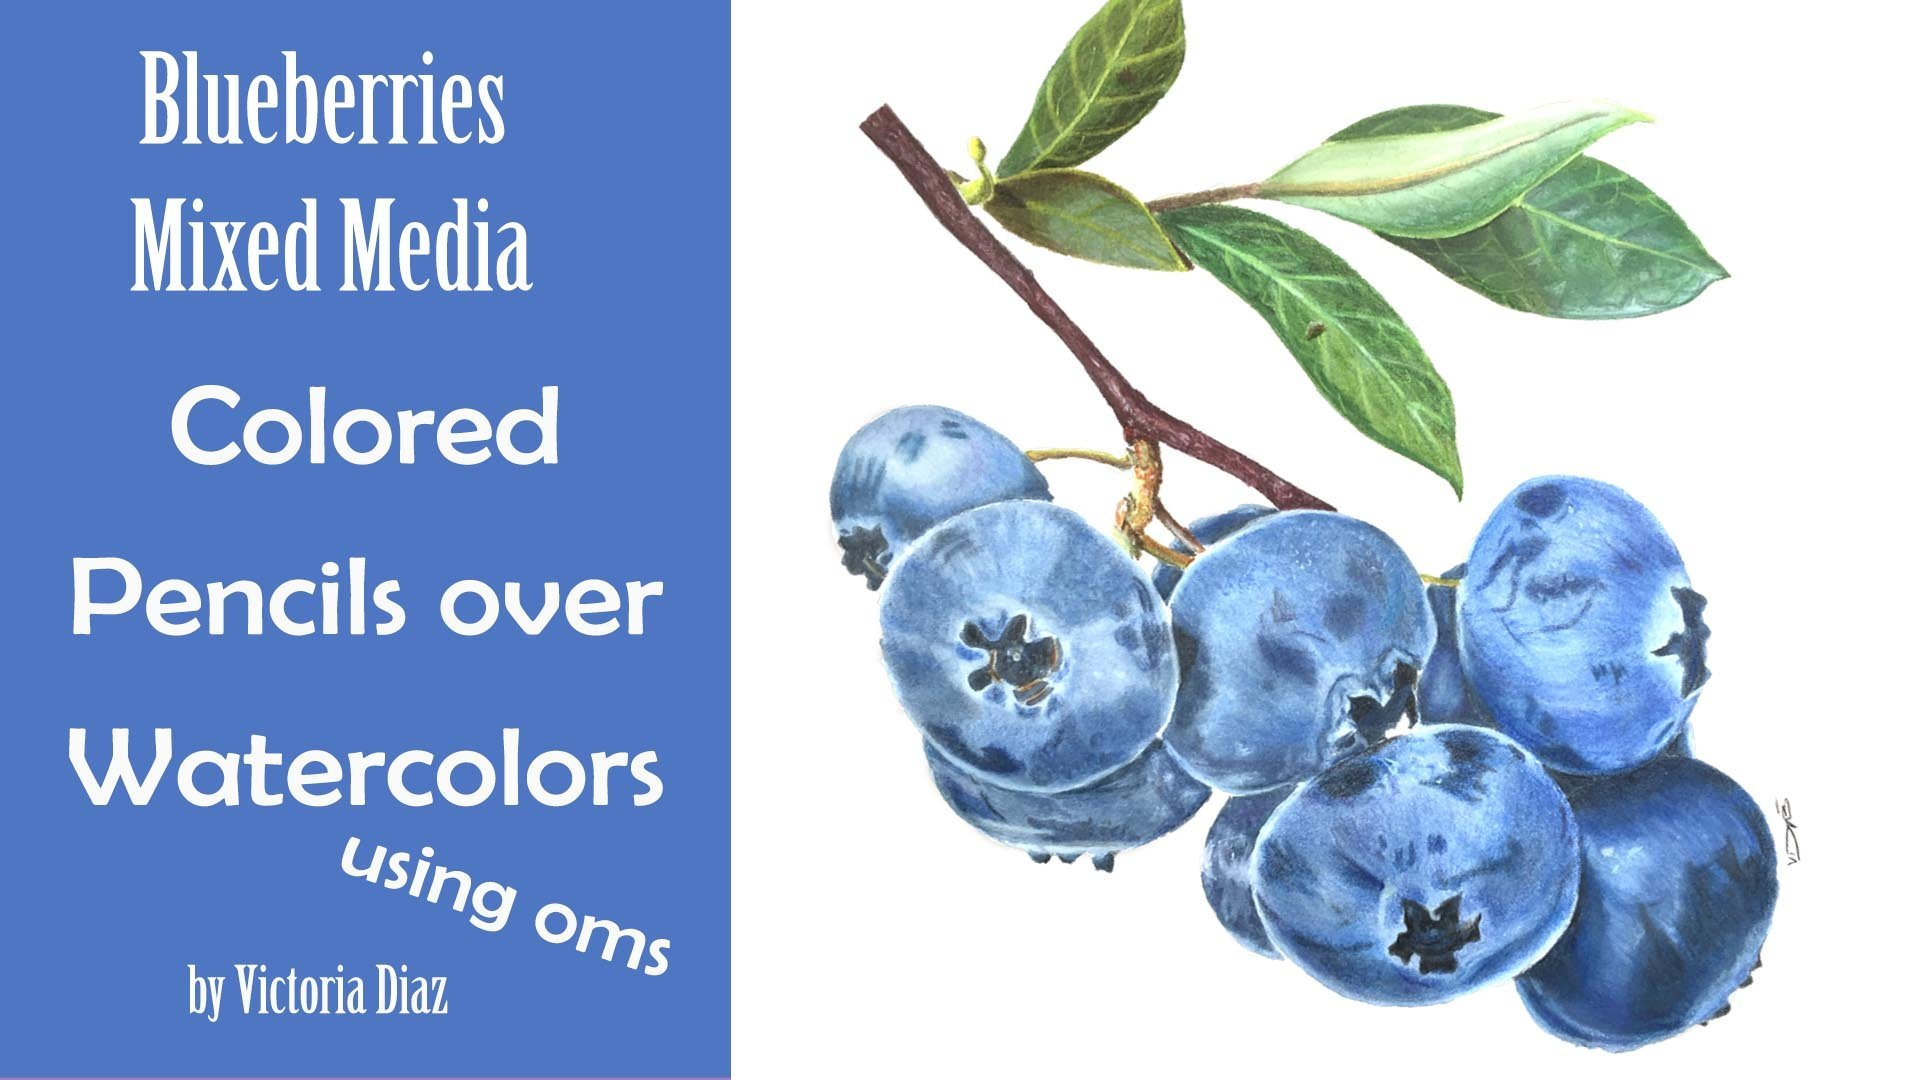 Botanical Painting Blueberries In Mixed Media Victoria Diaz Skillshare